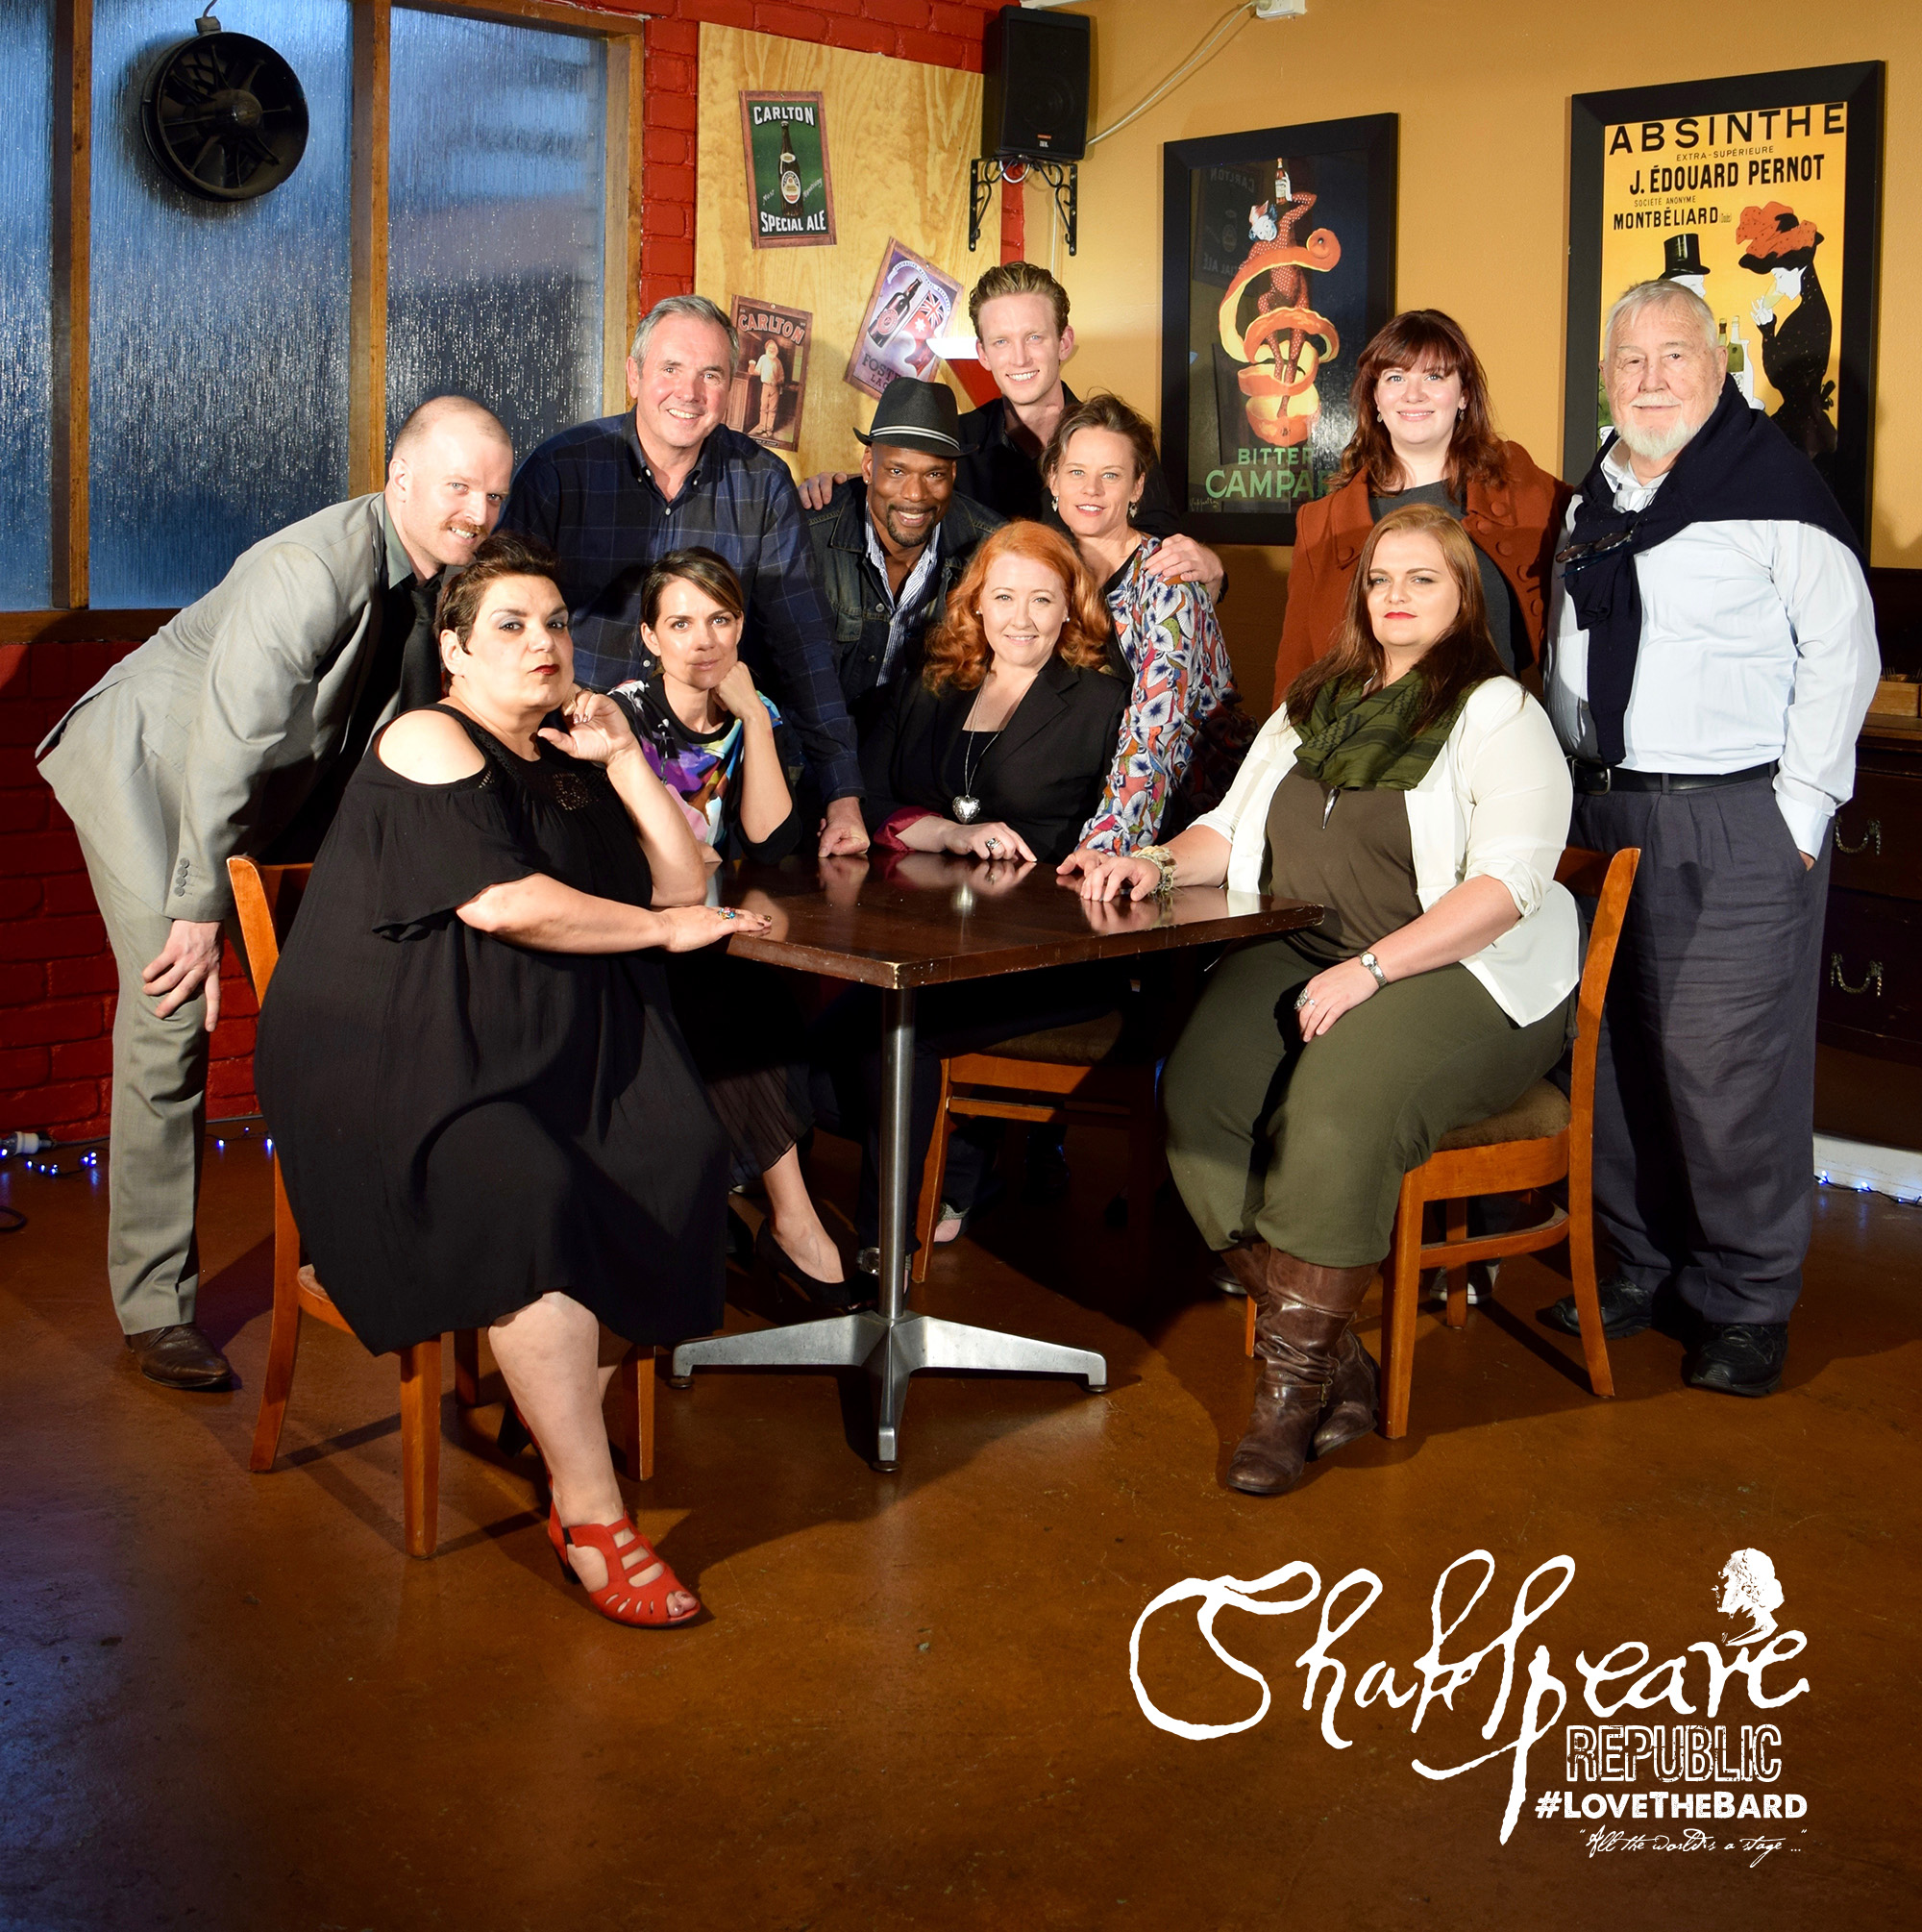 Shakespeare Republic Season Two Cast: Billy Smedley, Alan Fletcher, Christopher Kirby, Shane Savage, Nadine Garner, Phoebe Anne Taylor, Stephen Costan, Wahibe Moussa, Michala Banas, me (Sally McLean) and Falon Ryan.  Missing from this photo - Dean Haglund and Tariro Mavondo.